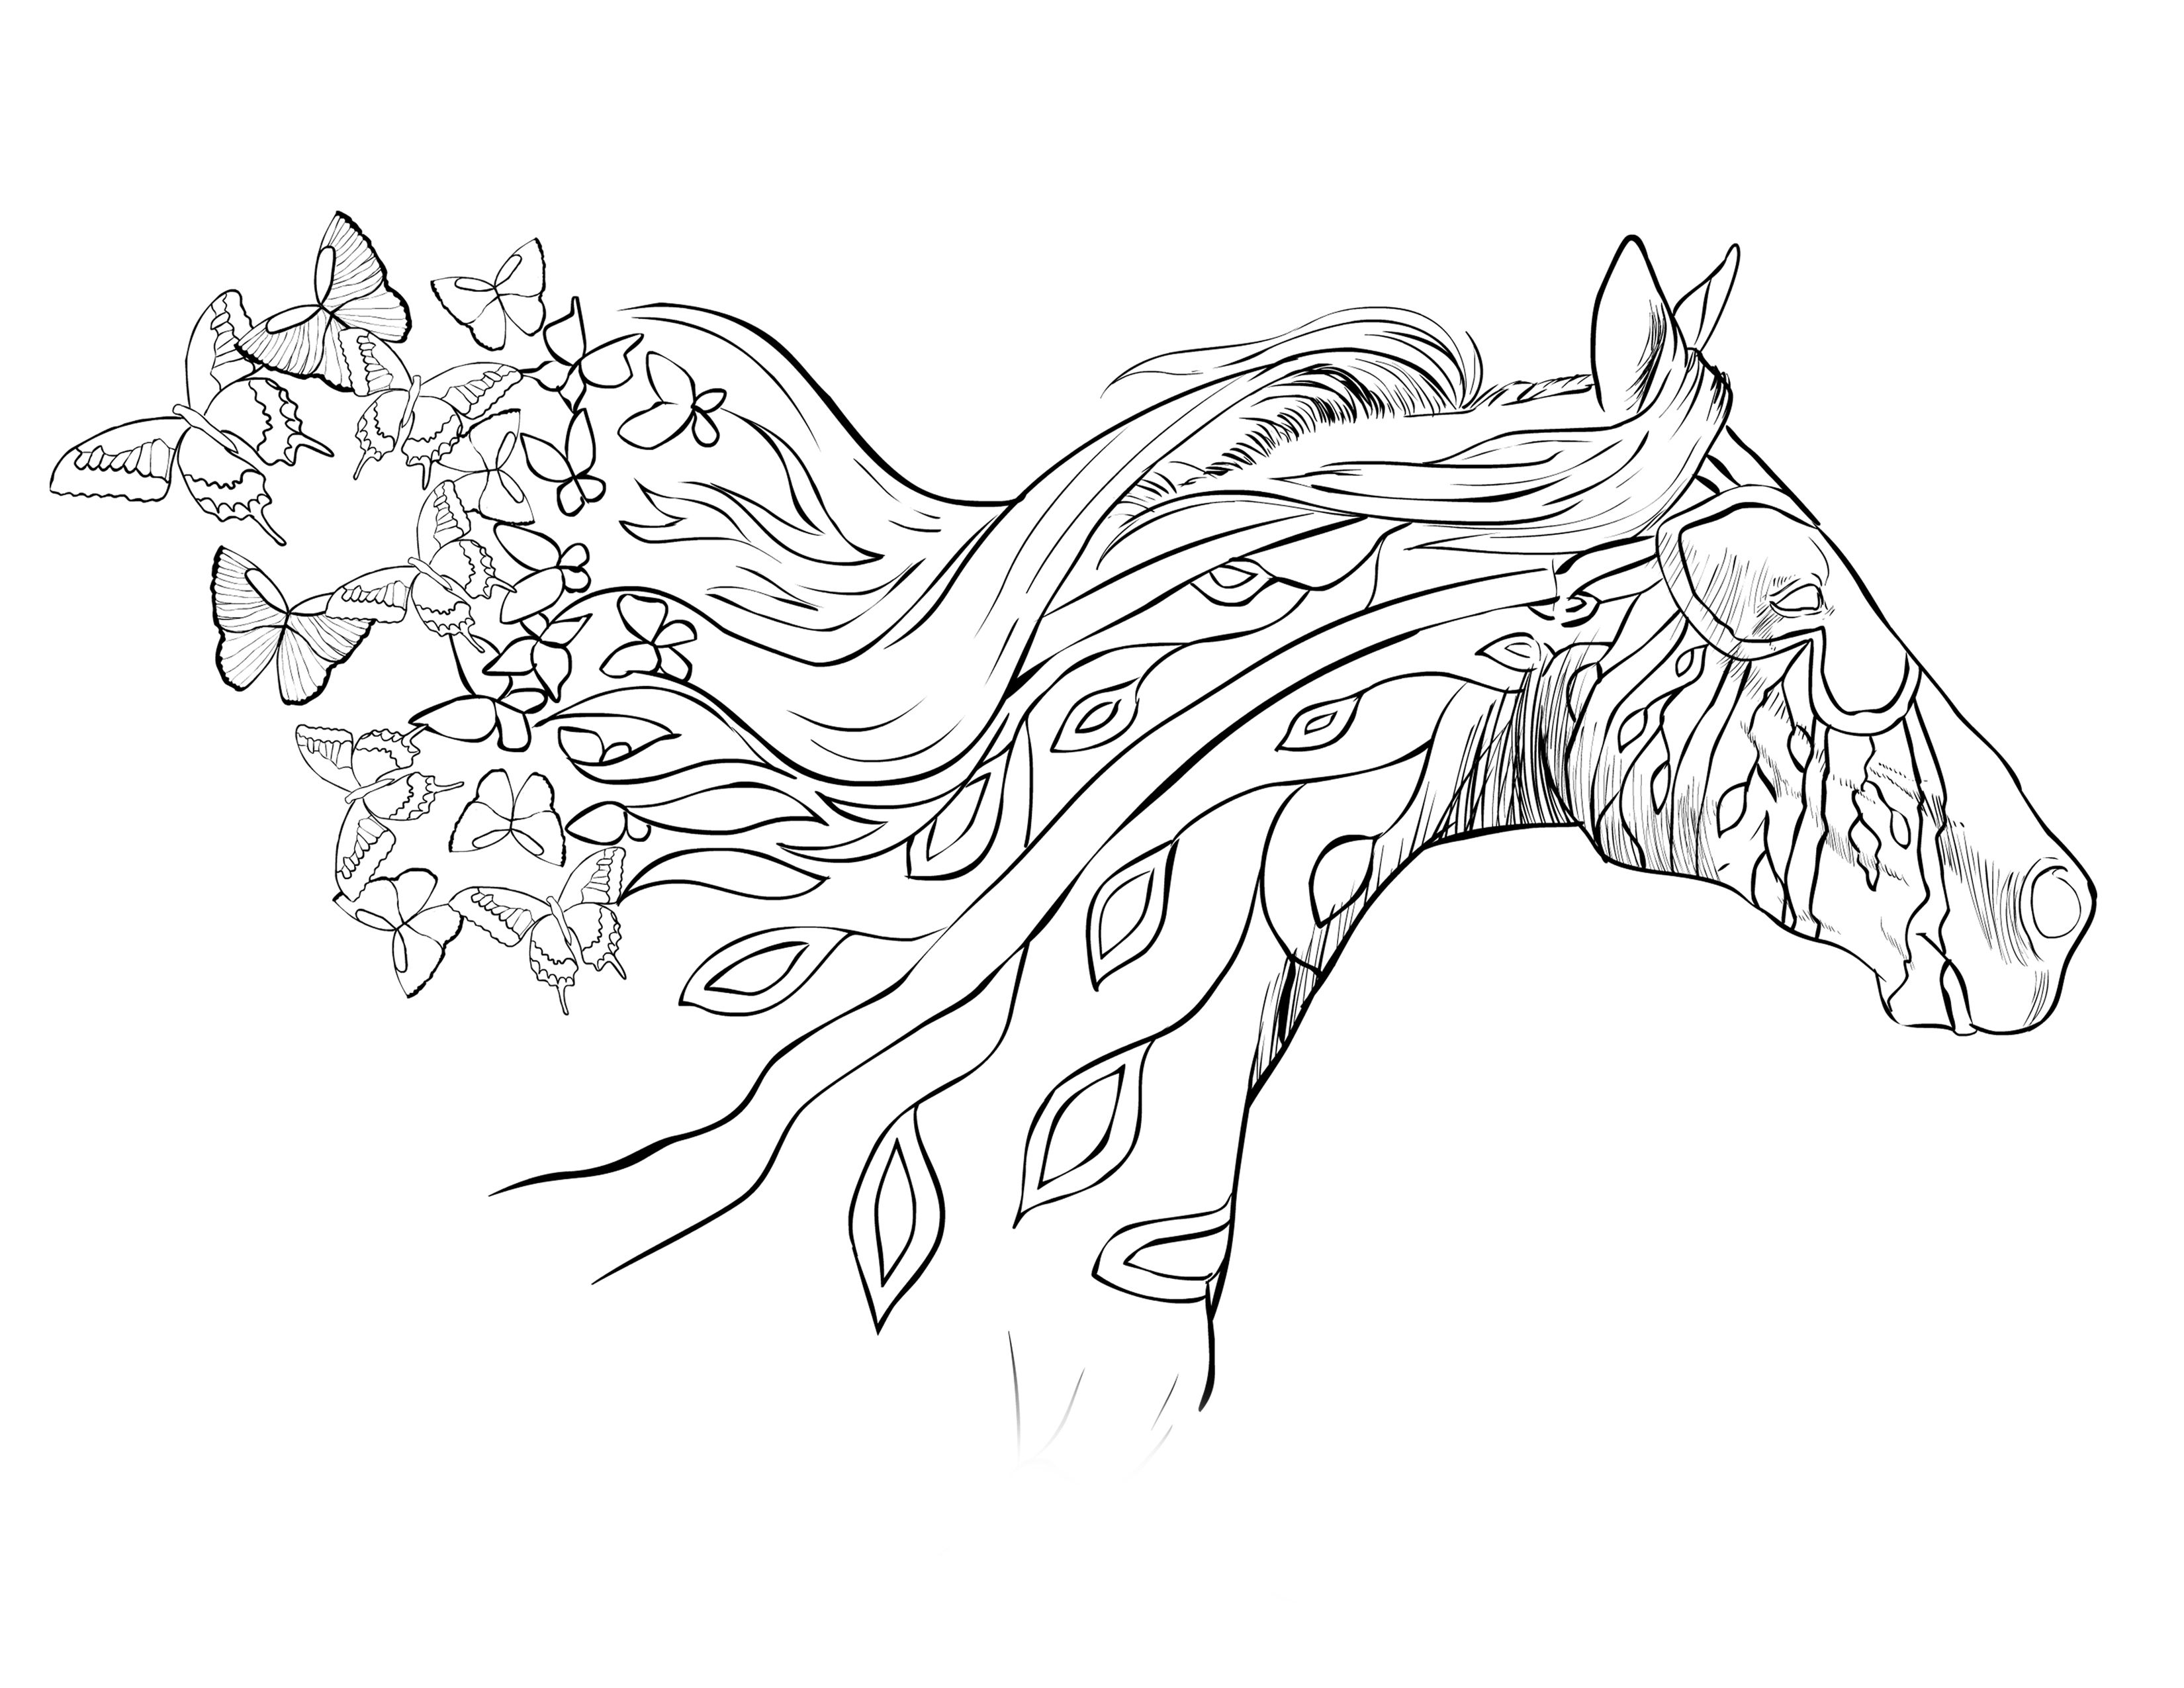 horse coloring pages online elegant horses coloring page free coloring pages online online pages horse coloring